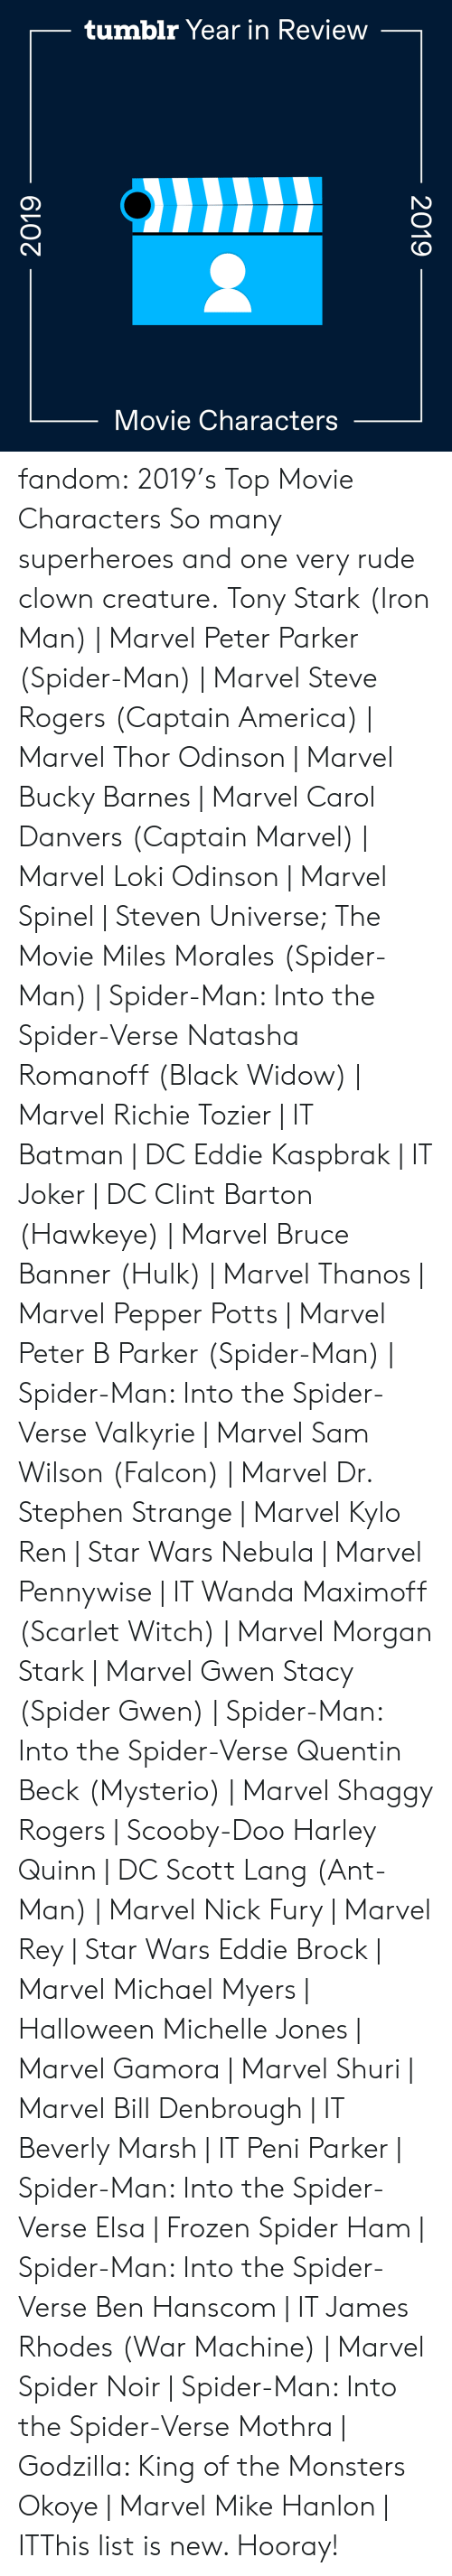 scooby: tumblr Year in Review  Movie Characters  2019  2019 fandom:  2019's Top Movie Characters  So many superheroes and one very rude clown creature.  Tony Stark (Iron Man) | Marvel  Peter Parker (Spider-Man) | Marvel  Steve Rogers (Captain America) | Marvel  Thor Odinson | Marvel  Bucky Barnes | Marvel  Carol Danvers (Captain Marvel) | Marvel  Loki Odinson | Marvel  Spinel | Steven Universe; The Movie  Miles Morales (Spider-Man) | Spider-Man: Into the Spider-Verse  Natasha Romanoff (Black Widow) | Marvel  Richie Tozier | IT  Batman | DC  Eddie Kaspbrak | IT  Joker | DC  Clint Barton (Hawkeye) | Marvel  Bruce Banner (Hulk) | Marvel  Thanos | Marvel  Pepper Potts | Marvel  Peter B Parker (Spider-Man) | Spider-Man: Into the Spider-Verse  Valkyrie | Marvel  Sam Wilson (Falcon) | Marvel  Dr. Stephen Strange | Marvel  Kylo Ren | Star Wars  Nebula | Marvel  Pennywise | IT  Wanda Maximoff (Scarlet Witch) | Marvel  Morgan Stark | Marvel  Gwen Stacy (Spider Gwen) | Spider-Man: Into the Spider-Verse  Quentin Beck (Mysterio) | Marvel  Shaggy Rogers | Scooby-Doo  Harley Quinn | DC  Scott Lang (Ant-Man) | Marvel  Nick Fury | Marvel  Rey | Star Wars  Eddie Brock | Marvel  Michael Myers | Halloween  Michelle Jones | Marvel  Gamora | Marvel  Shuri | Marvel  Bill Denbrough | IT  Beverly Marsh | IT  Peni Parker | Spider-Man: Into the Spider-Verse  Elsa | Frozen  Spider Ham | Spider-Man: Into the Spider-Verse  Ben Hanscom | IT  James Rhodes (War Machine) | Marvel  Spider Noir | Spider-Man: Into the Spider-Verse  Mothra | Godzilla: King of the Monsters  Okoye | Marvel Mike Hanlon | ITThis list is new. Hooray!